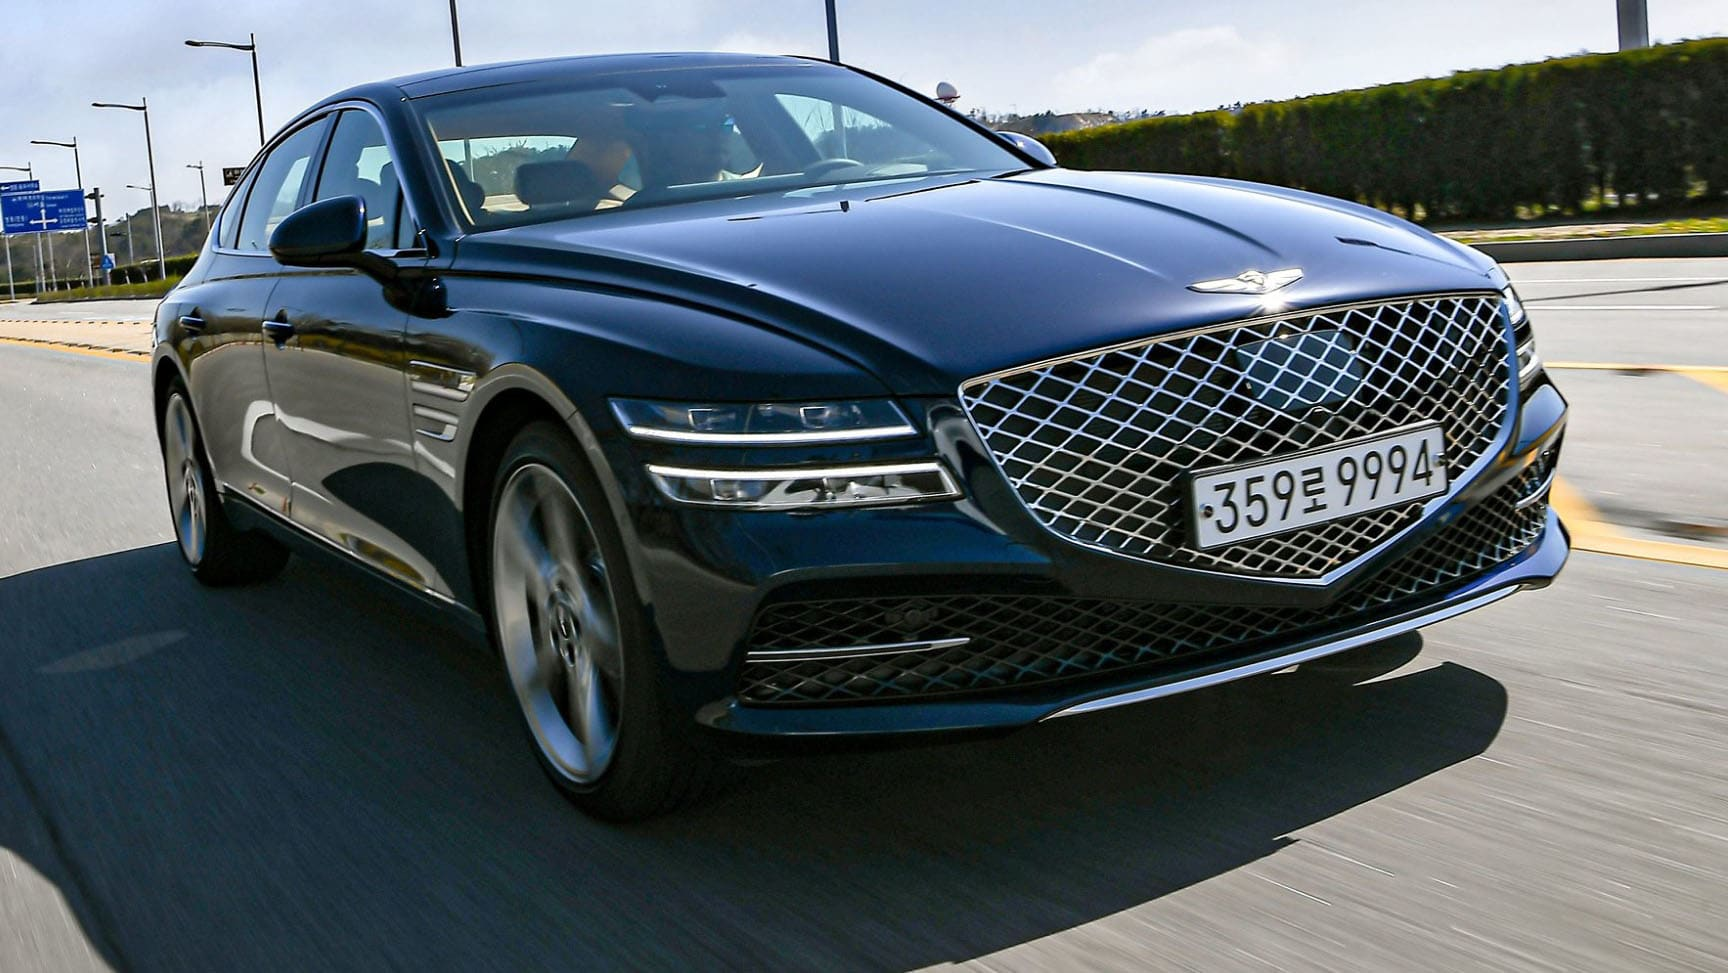 2021 Genesis G80 More Details Released Caradvice